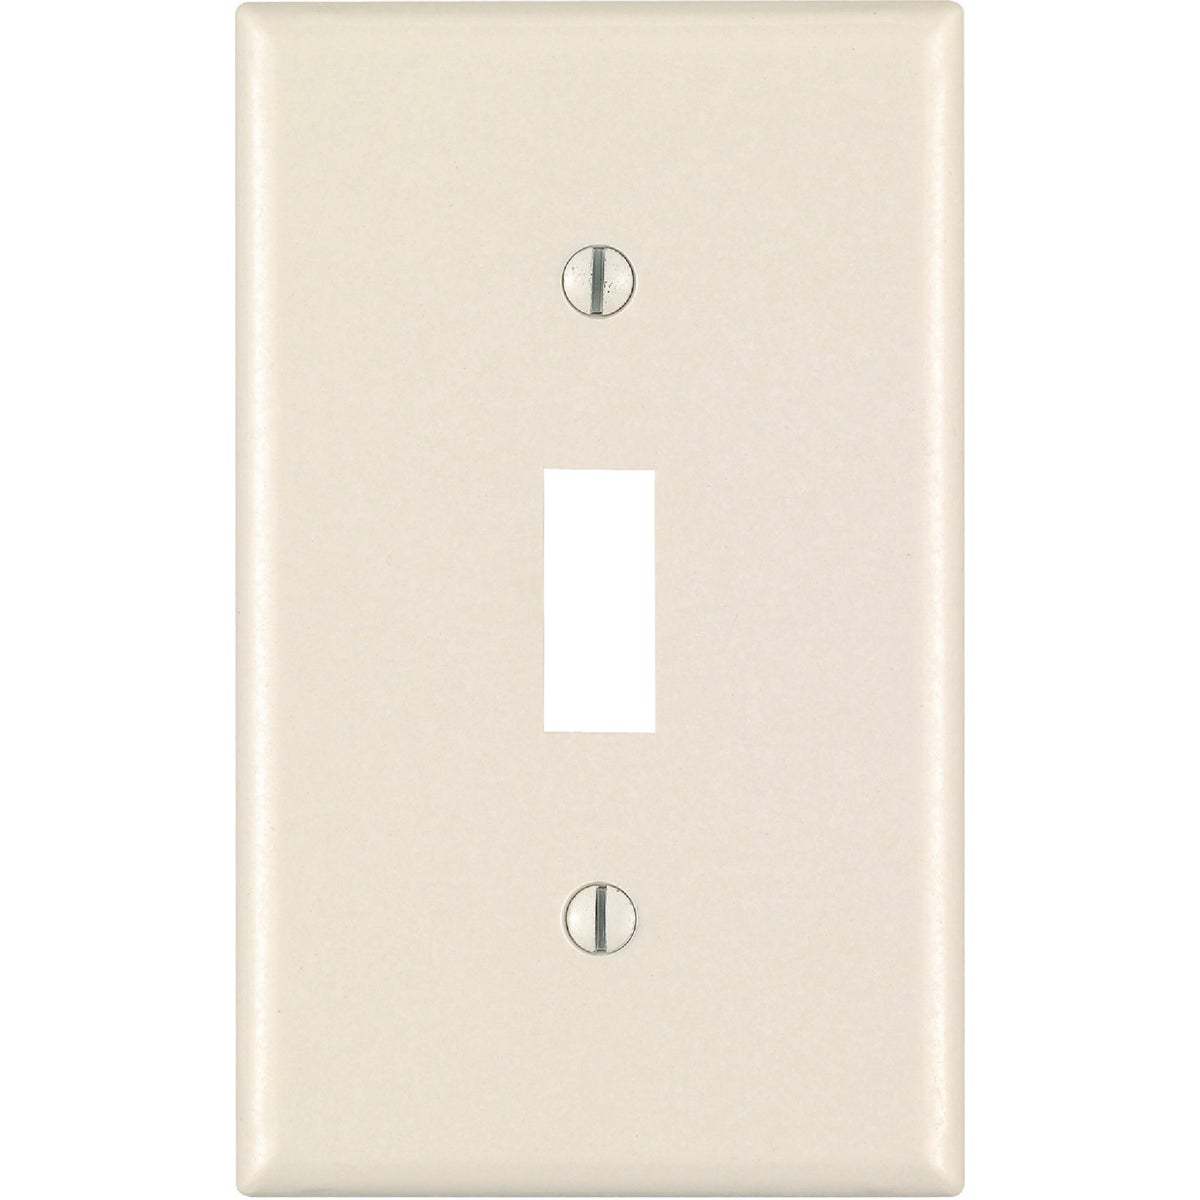 LT ALM 10PK 1TGL WALLPLT - M56-78001-TMP by Leviton Mfg Co